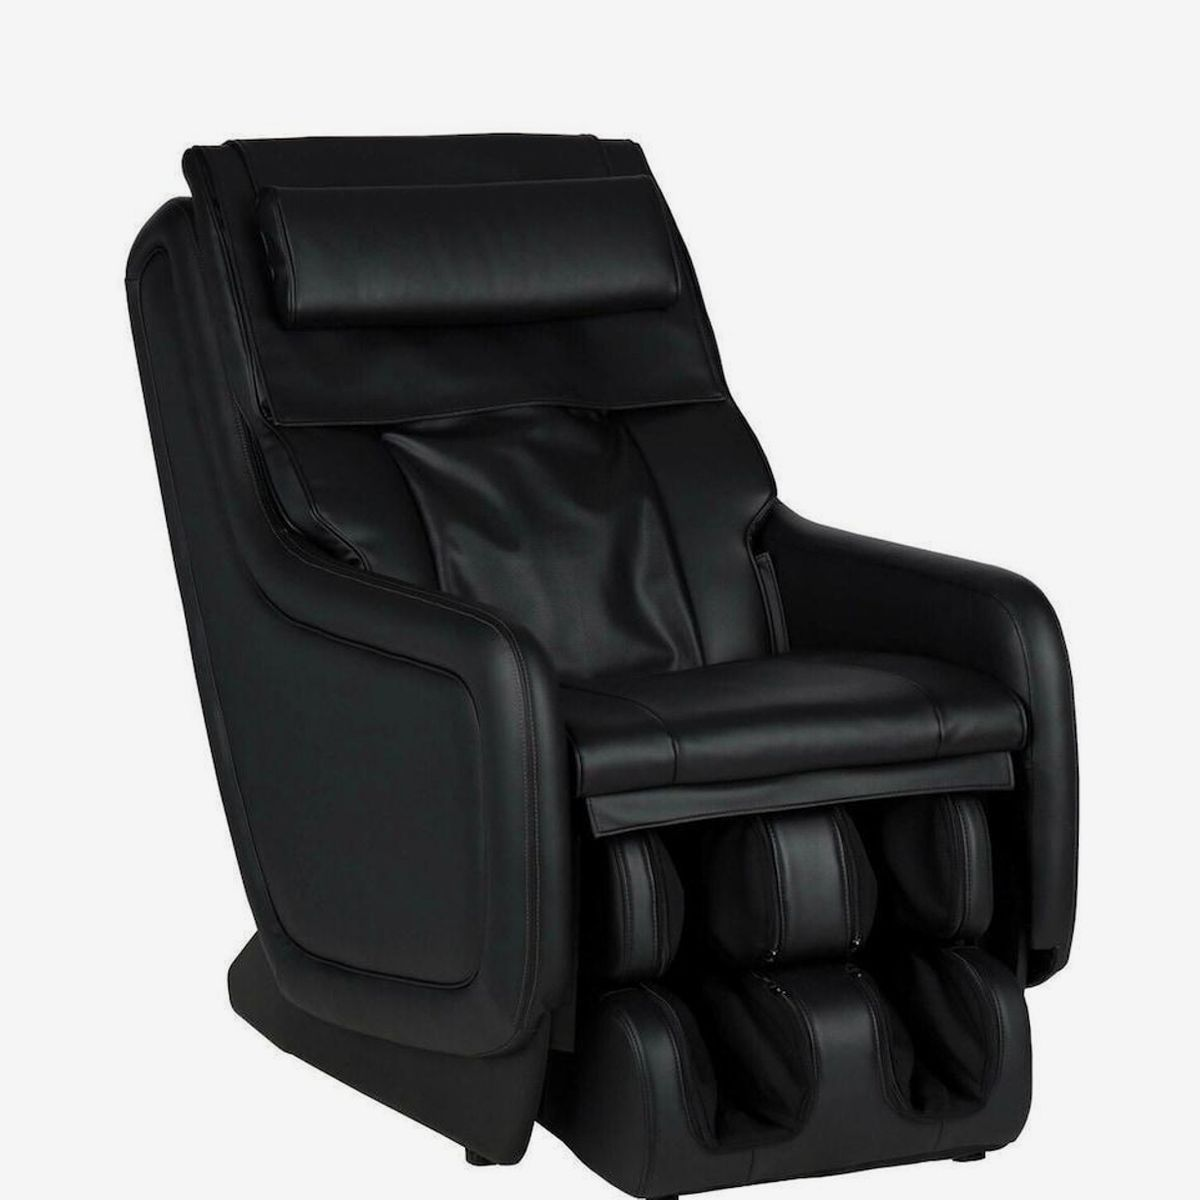 The Best Massage Chairs And Recliners To Buy 2020 The Strategist New York Magazine